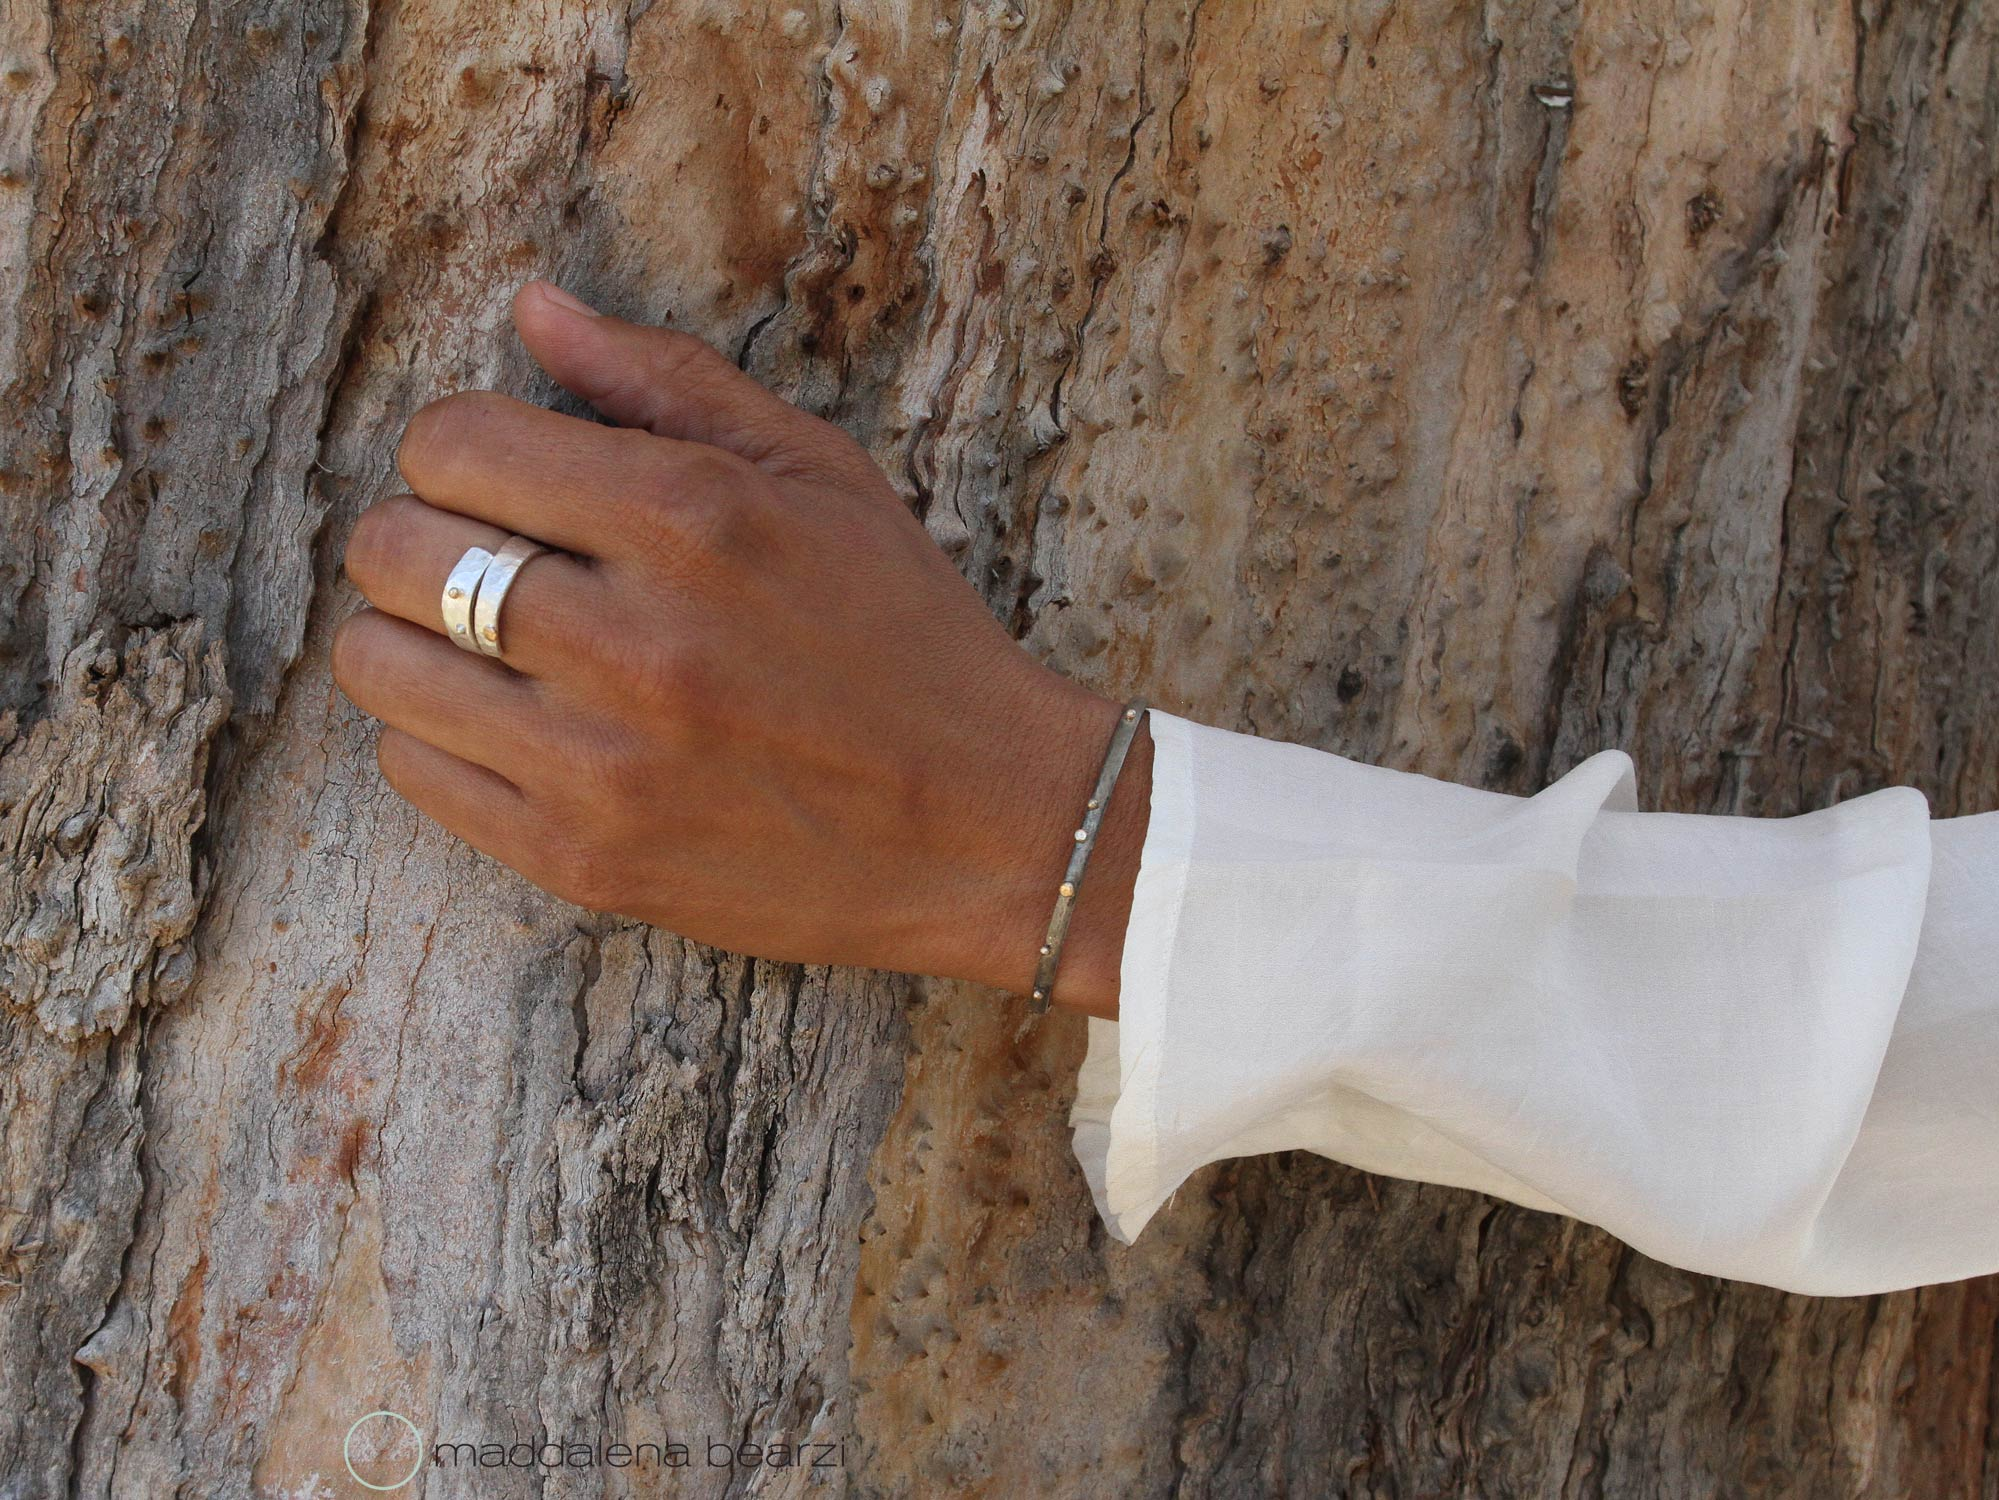 Handcrafted ring and bracelet in silver and solid gold from Maddalena Bearzi jewelry